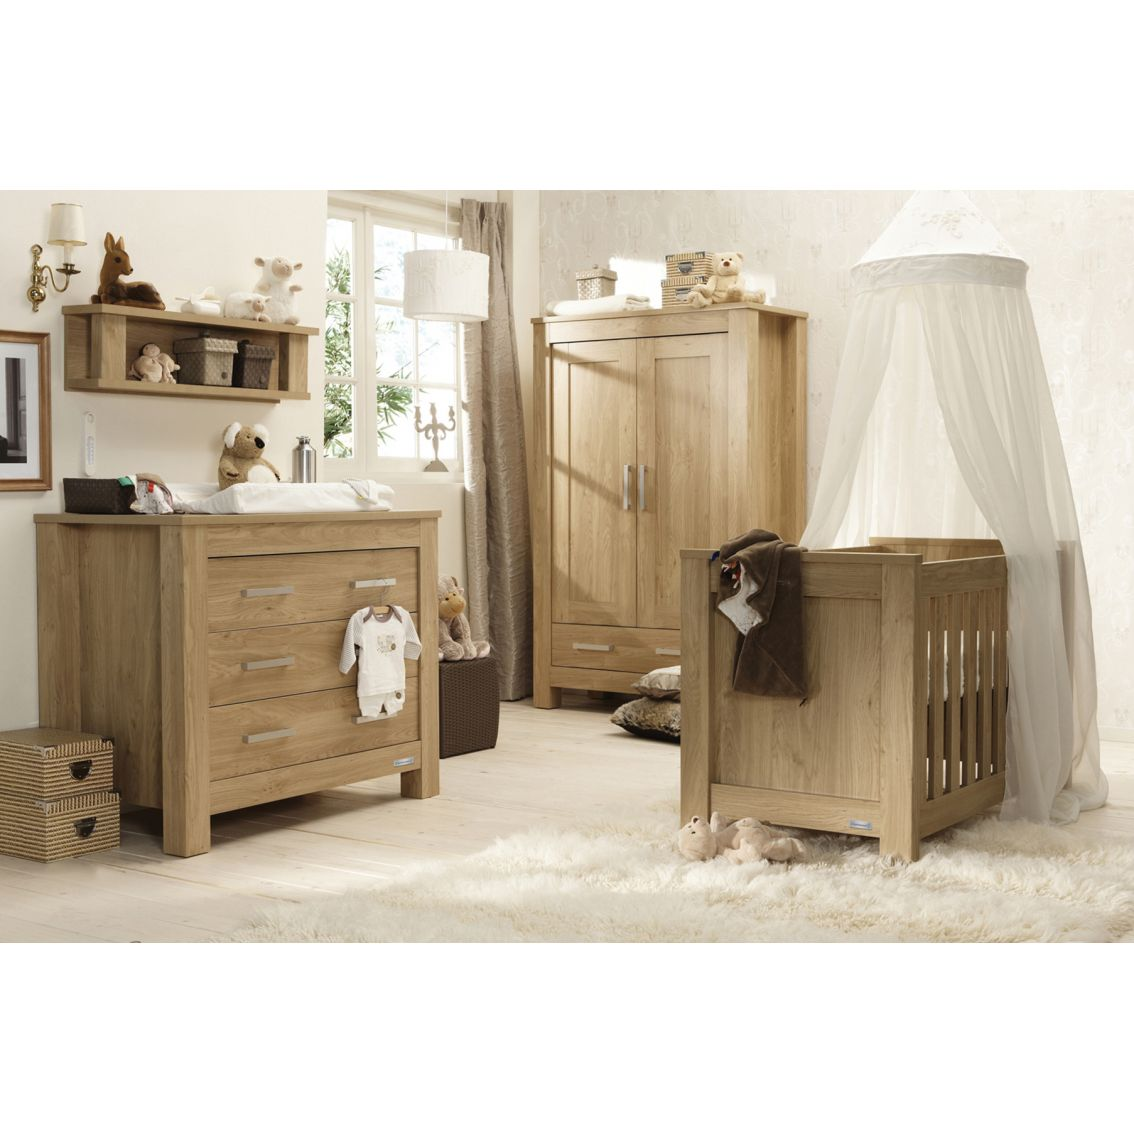 babystyle bordeaux 3 nursery furniture set on 3 Piece Nursery Set id=80216